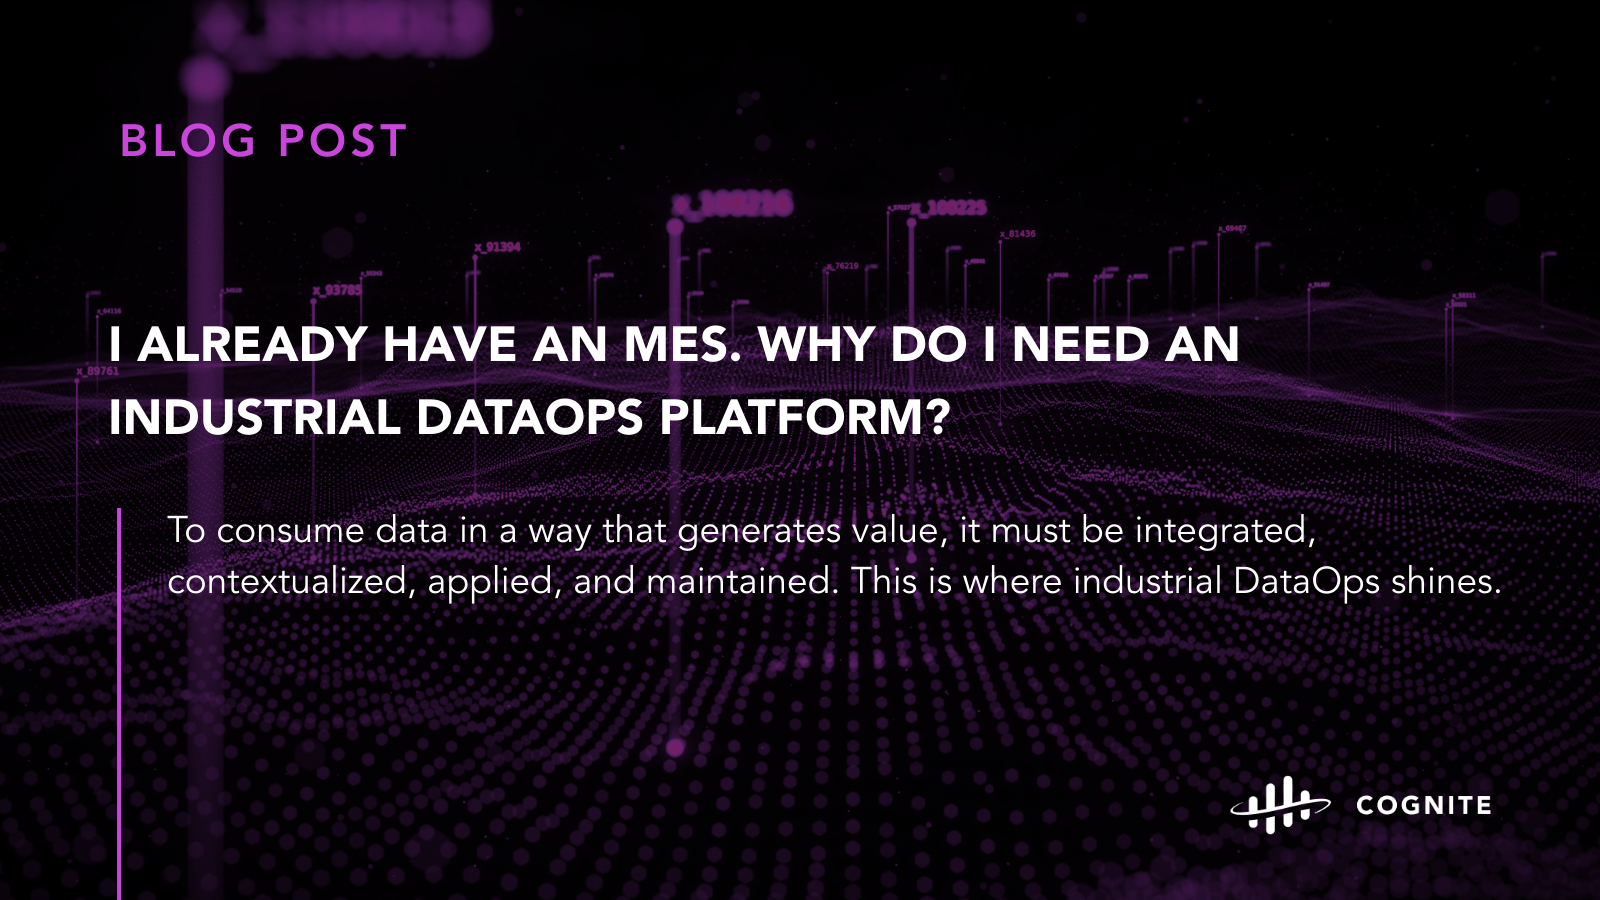 I Already Have an MES. Why Do I Need an Industrial DataOps Platform?